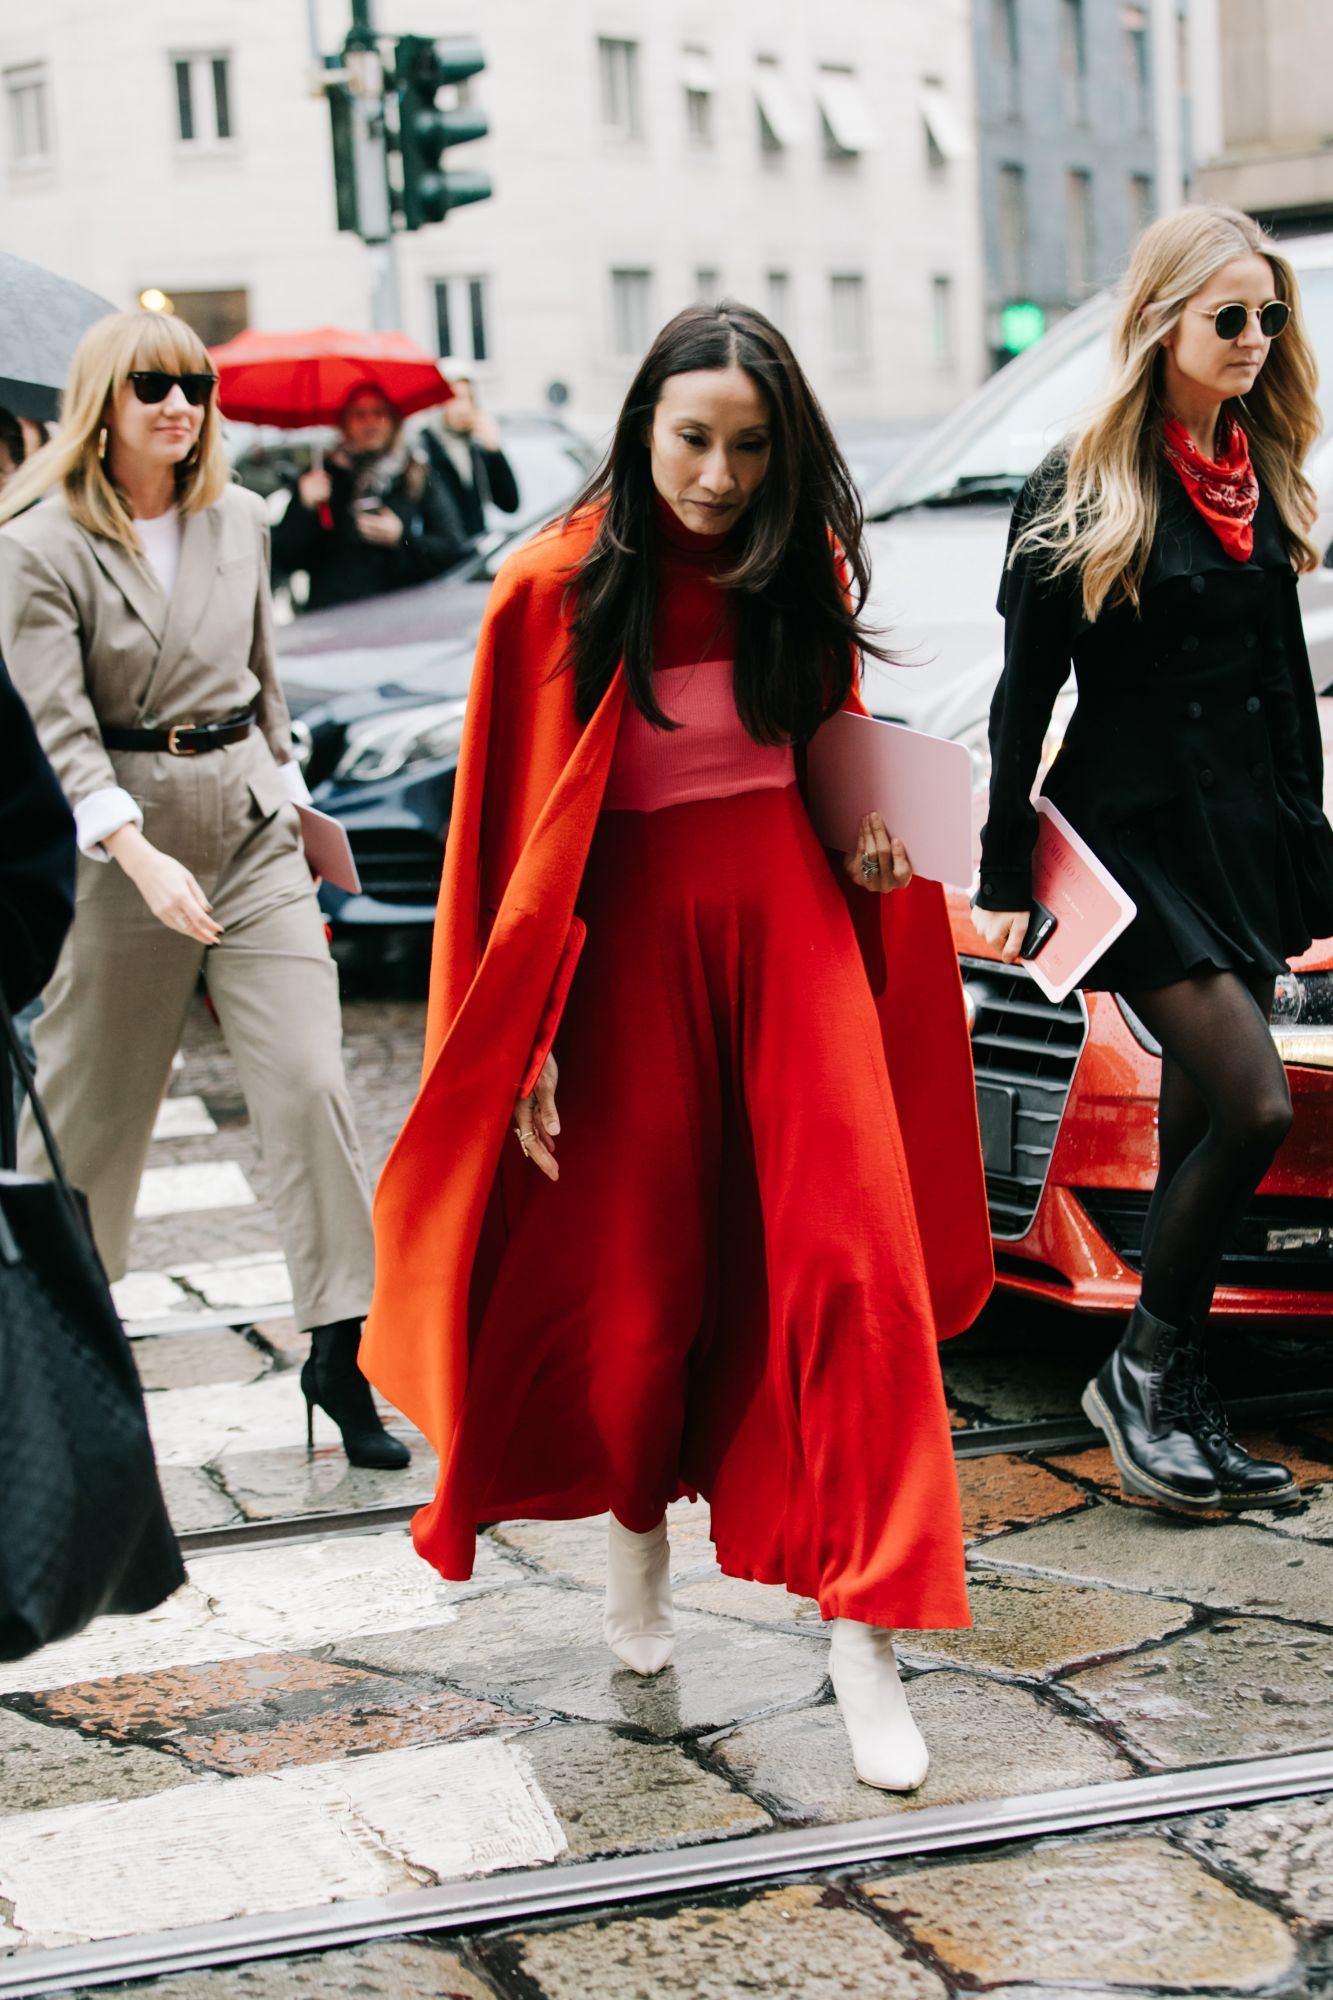 The Top 3 Spring/Summer 2018 Trends You Should Be Shopping For